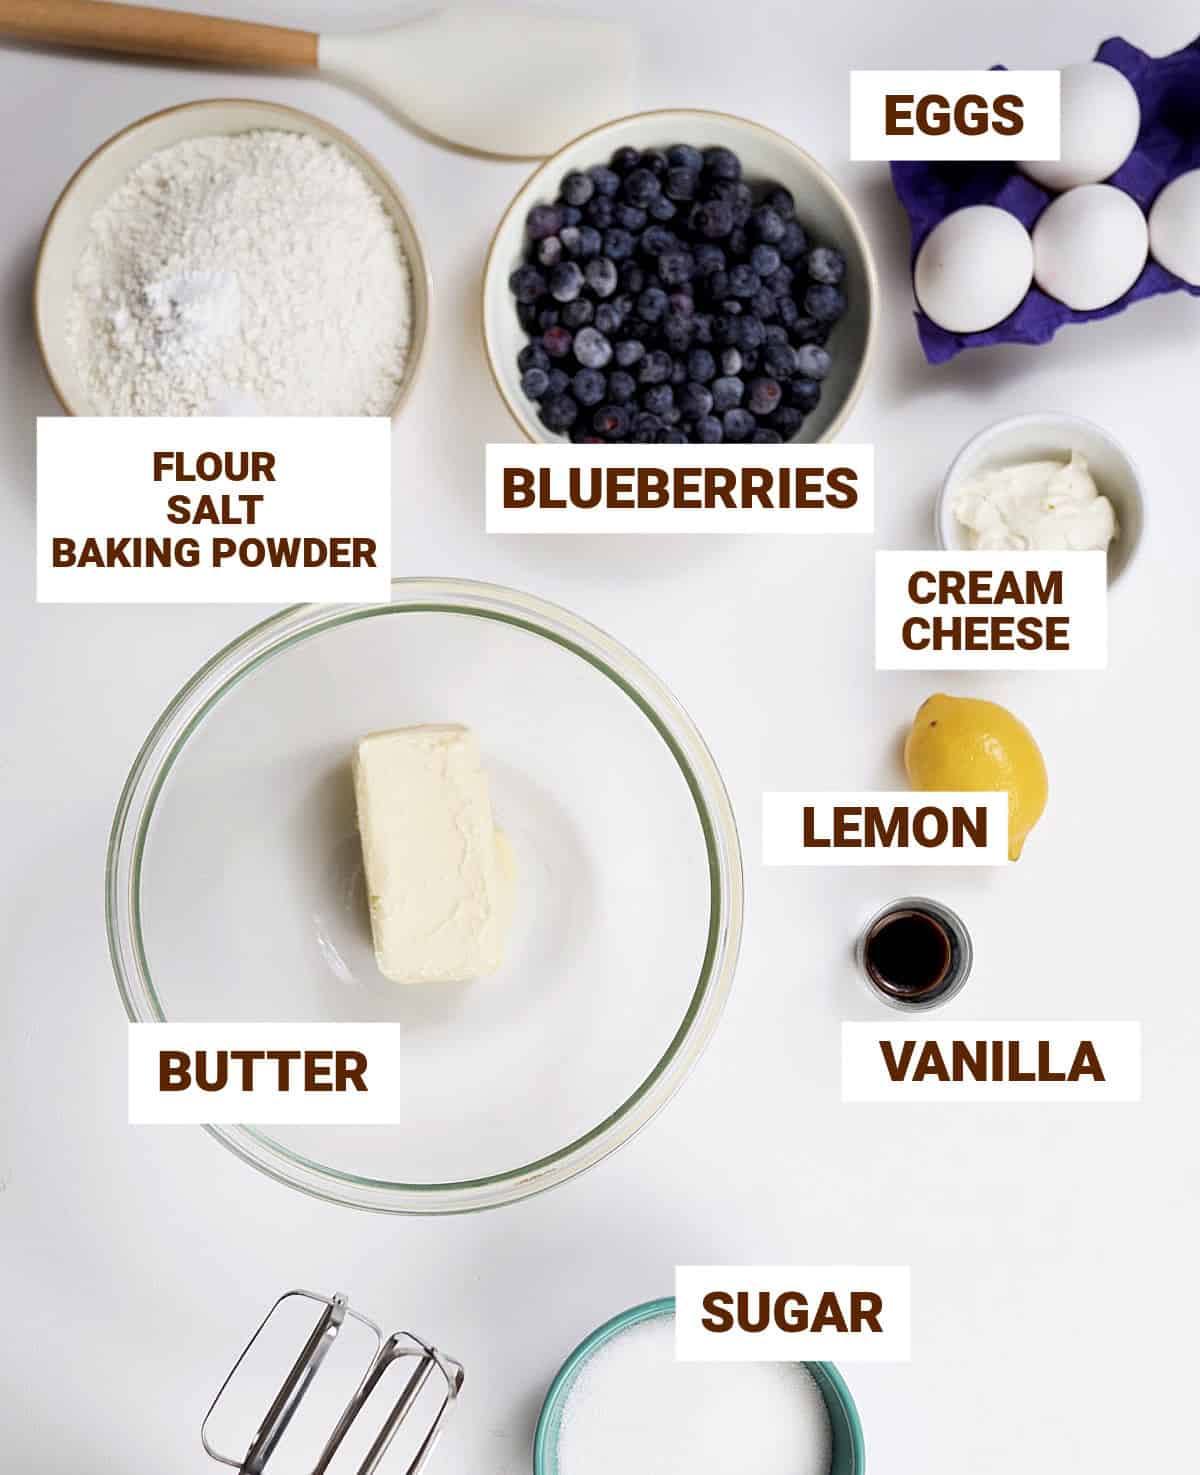 White surface with bowls containing lemon blueberry cake ingredients including butter, vanilla, flour mixture, sugar